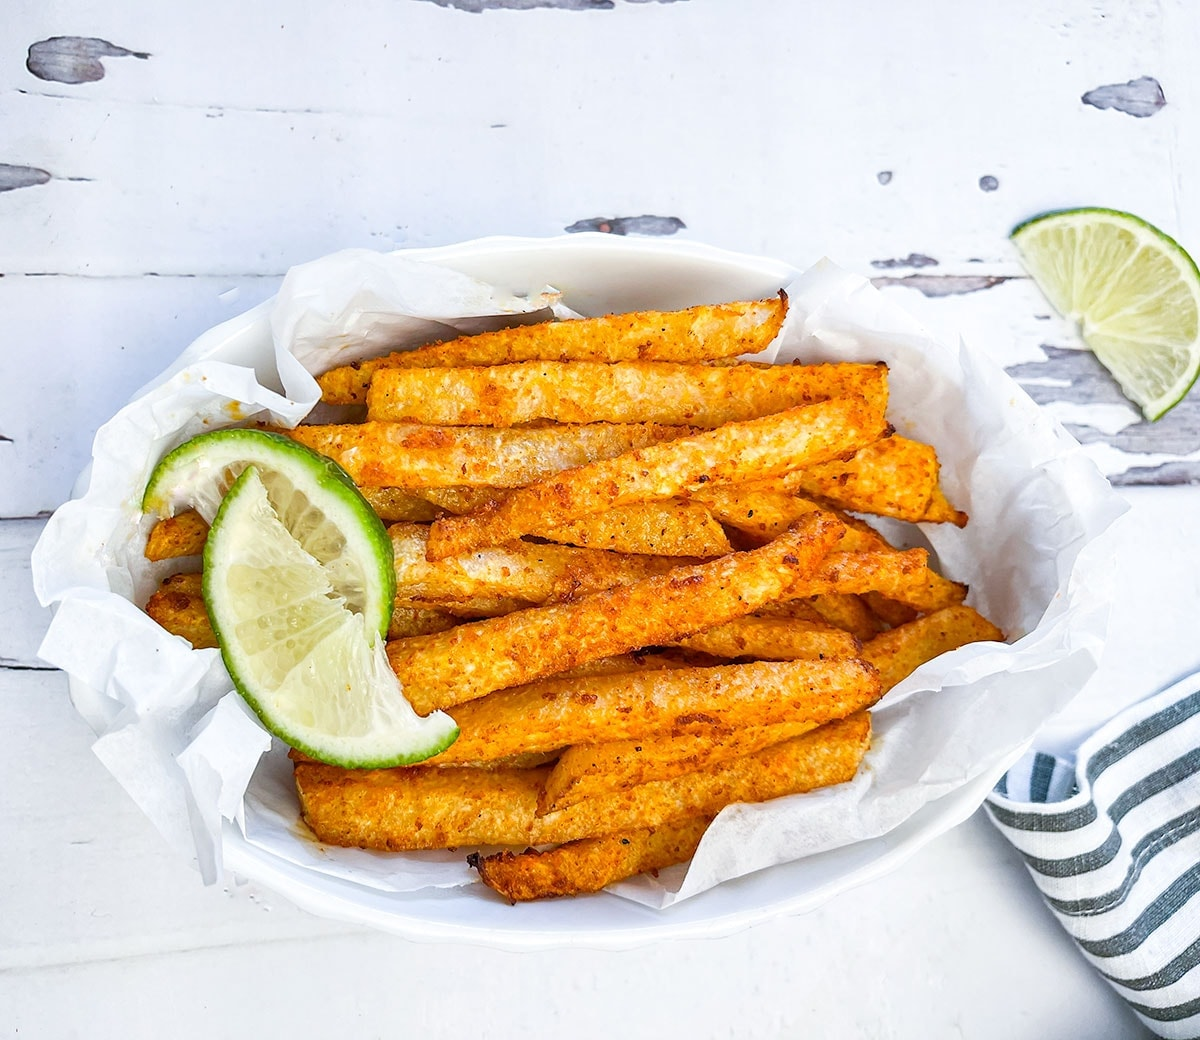 air fryer jicama fries close up in a white bowl with lime slices